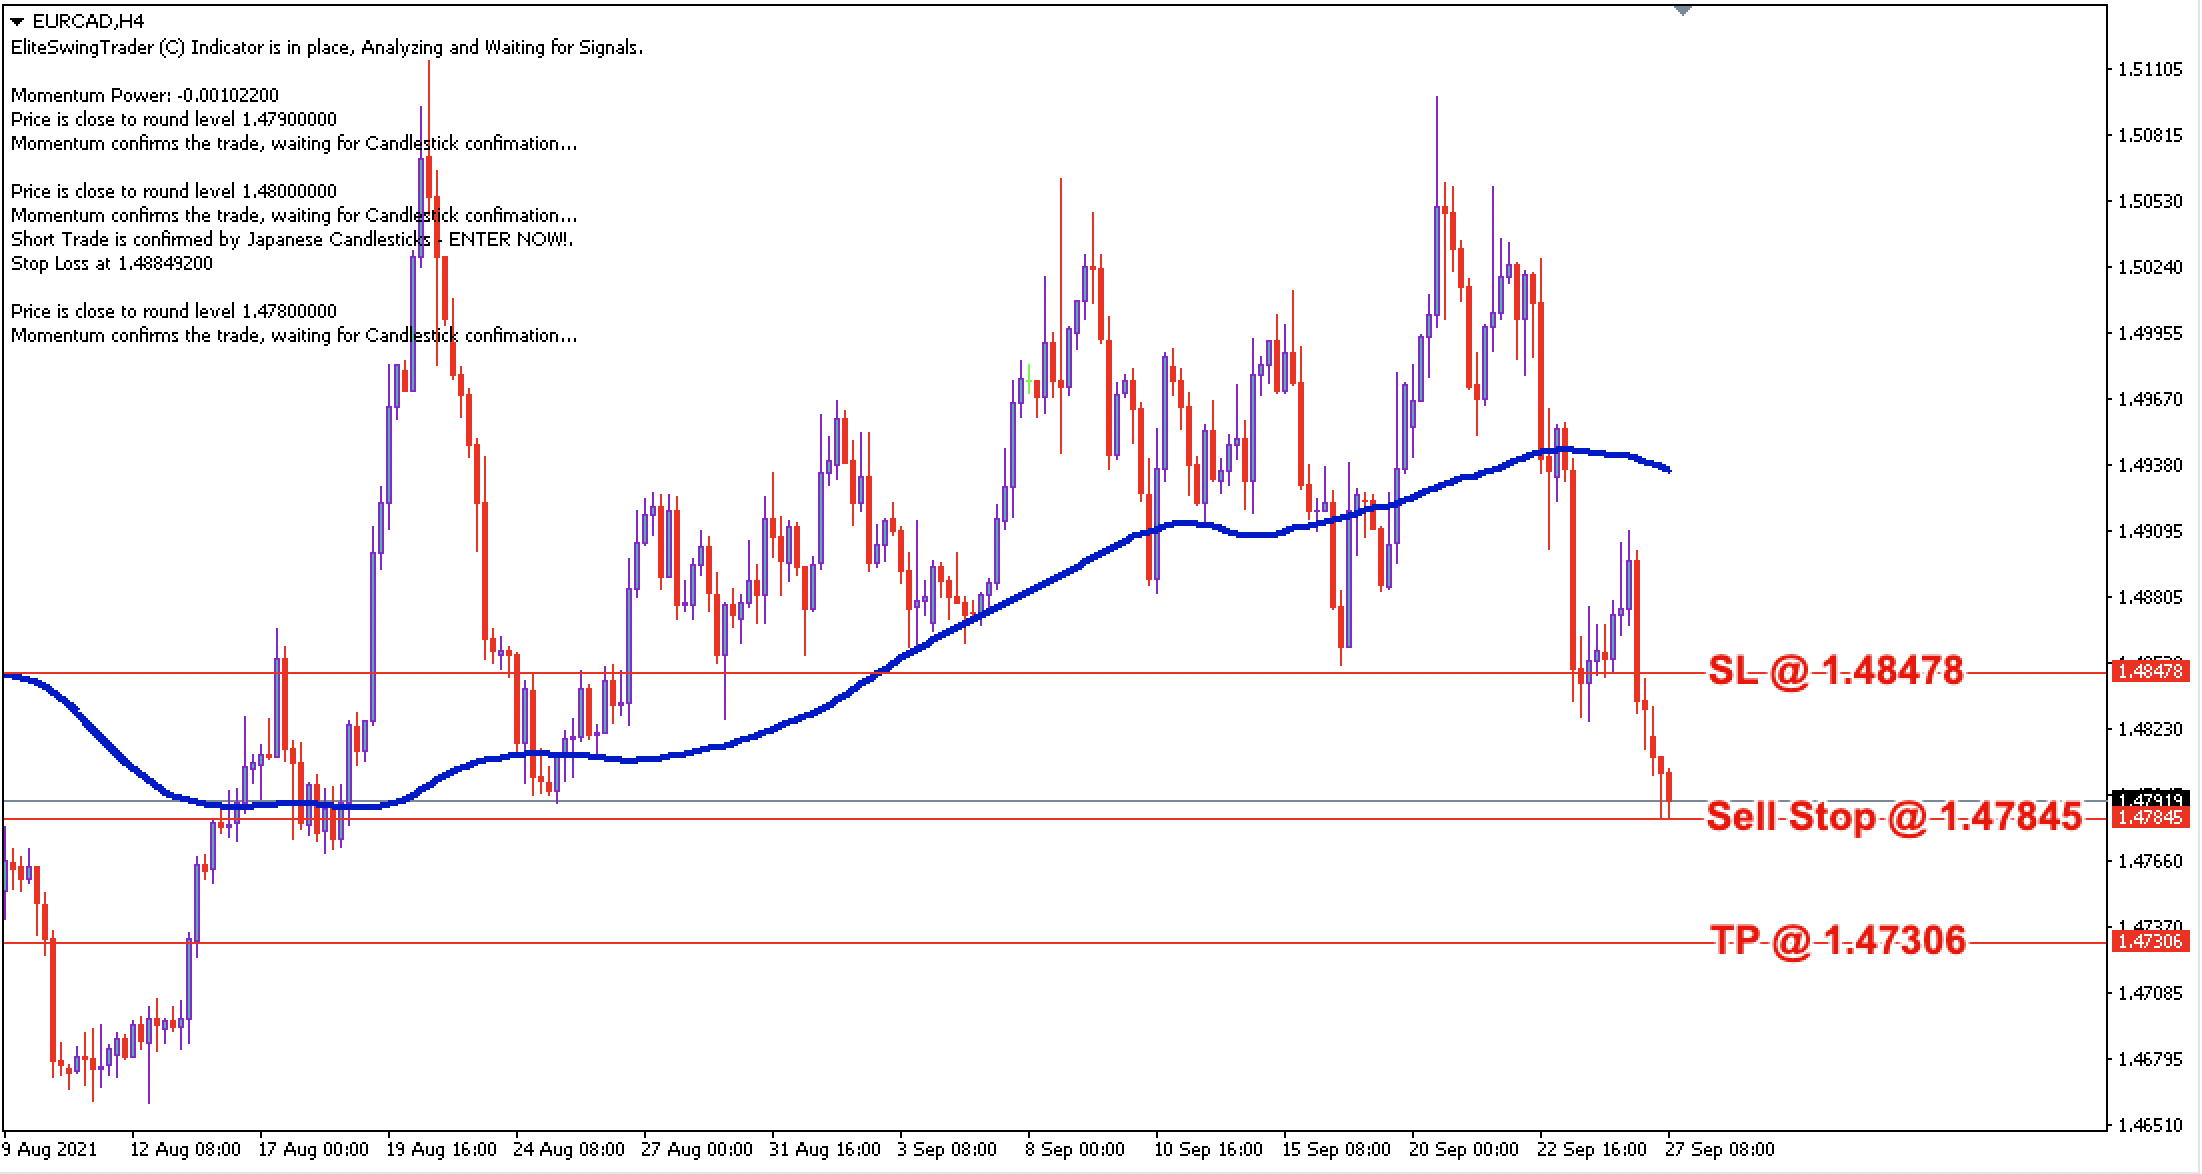 EUR/CAD Daily Price Forecast – 27th Sept 2021